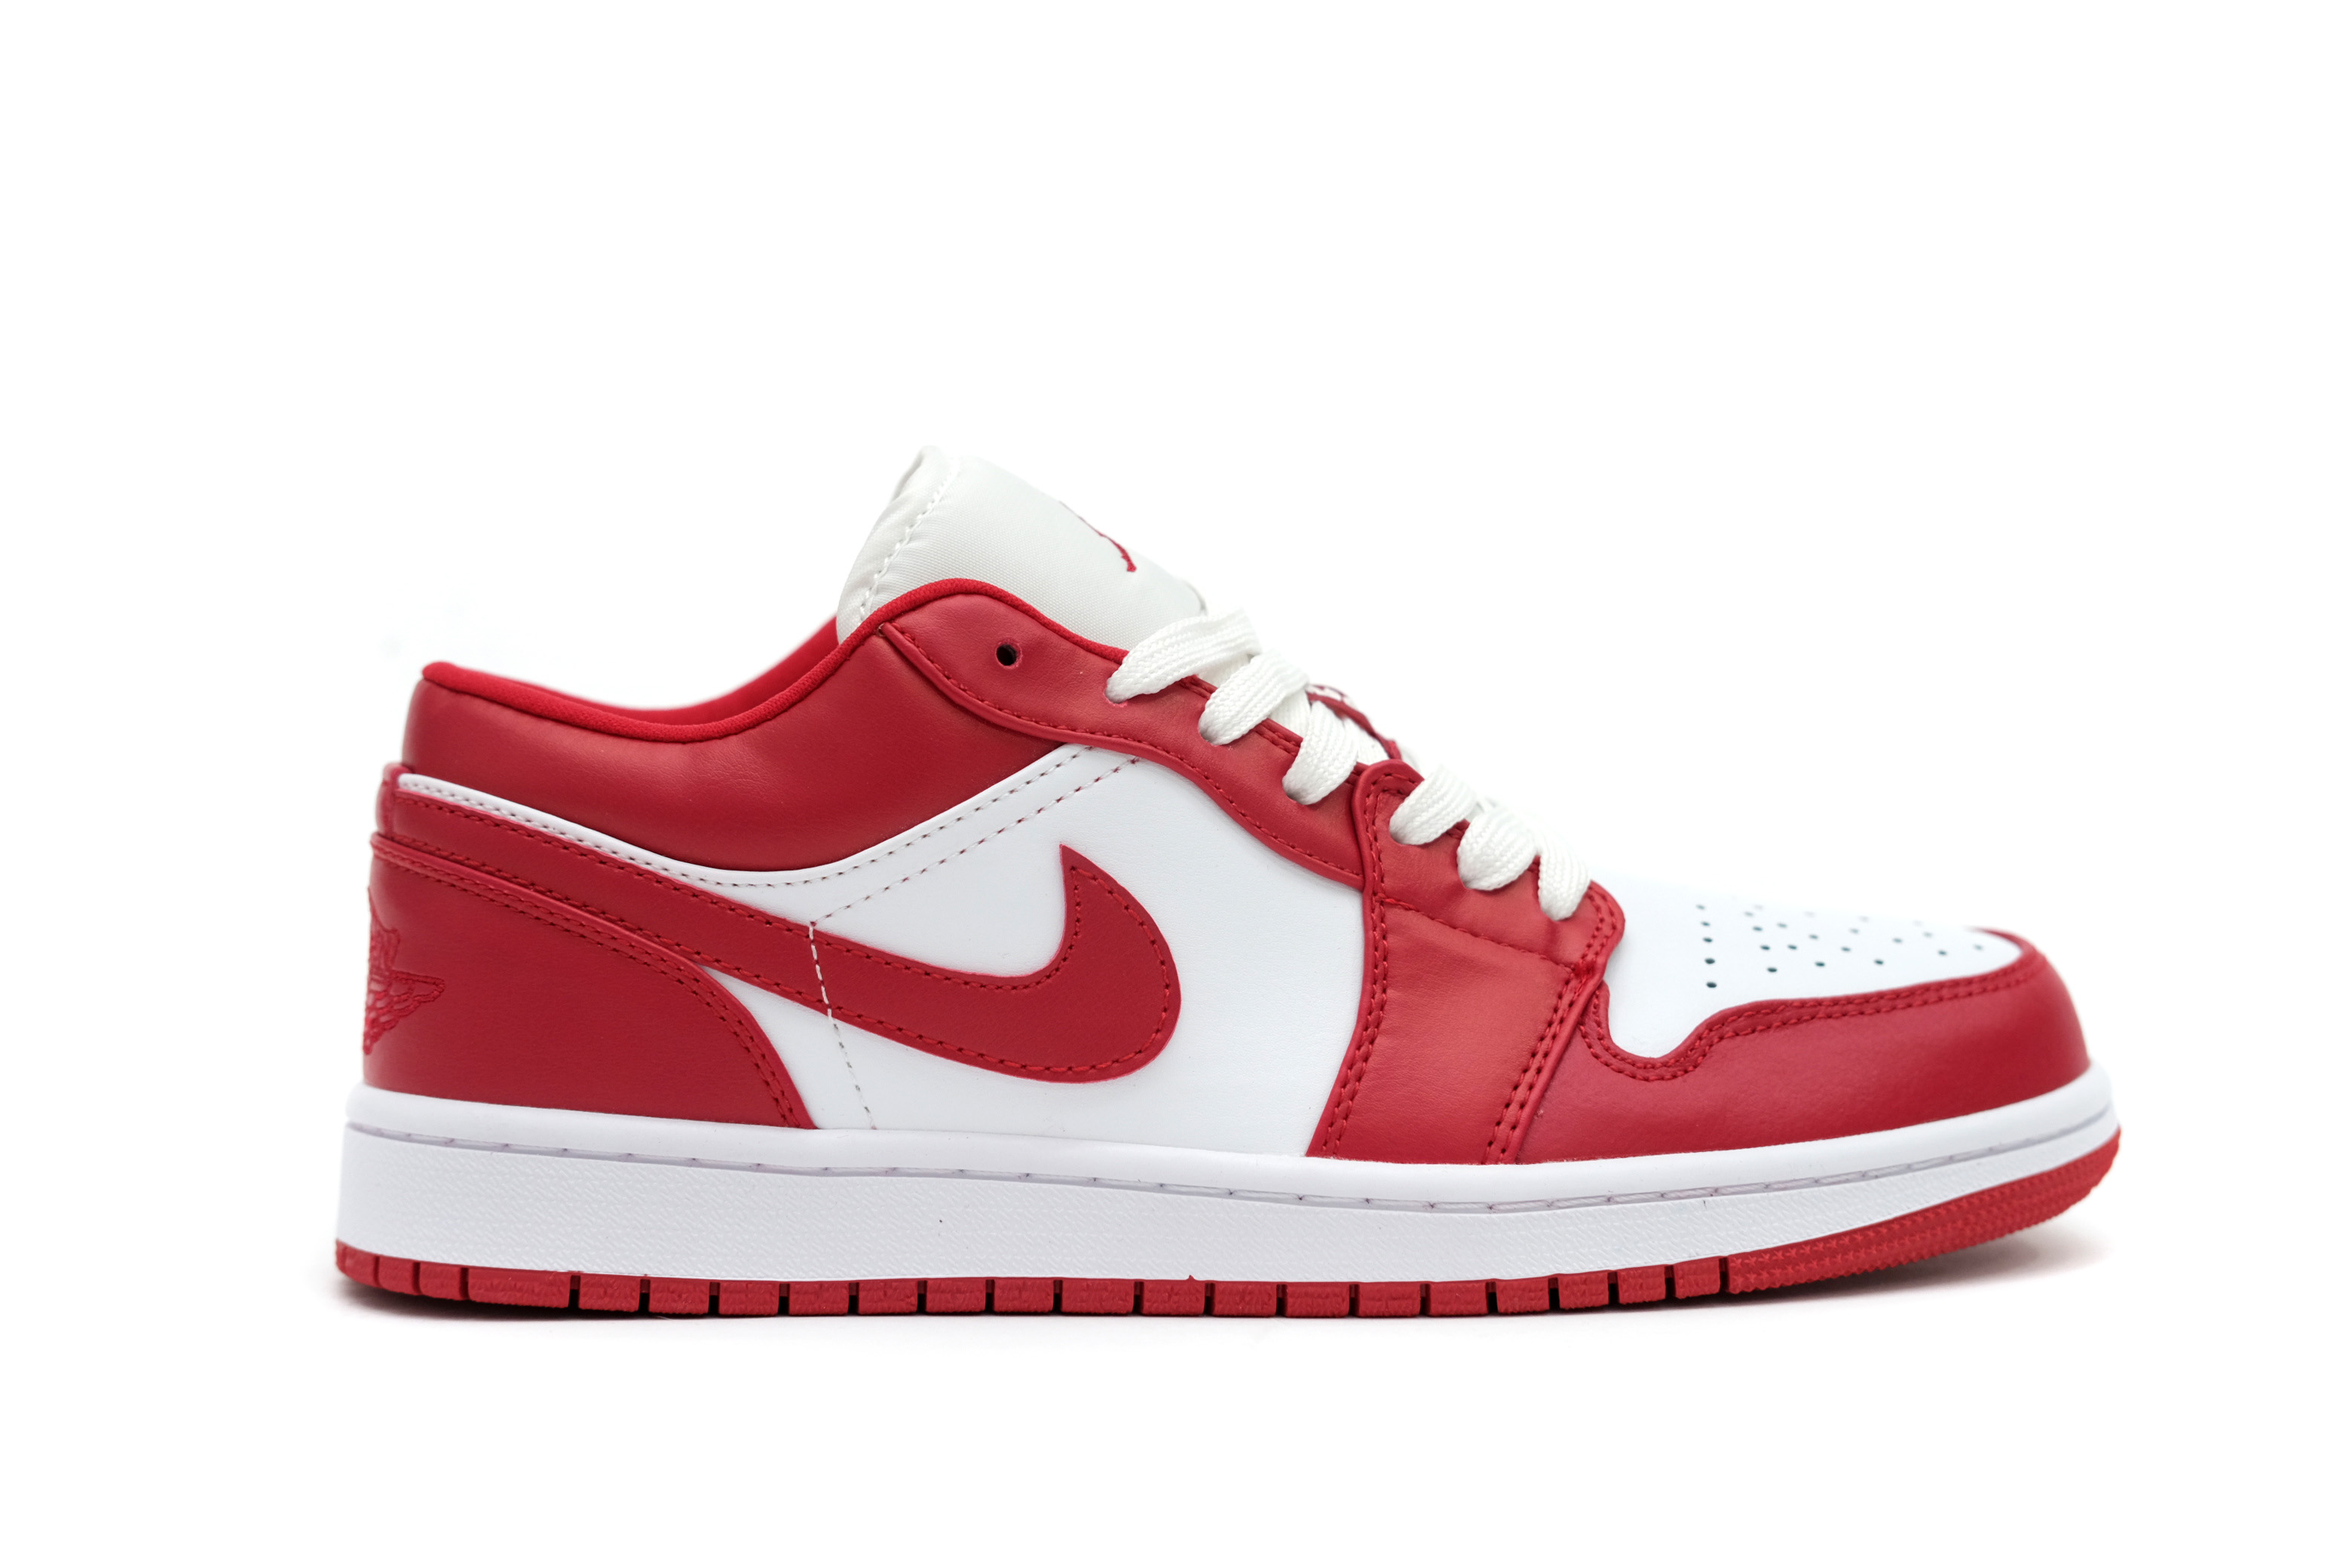 AIR JORDAN 1 LOW 'GYM RED'